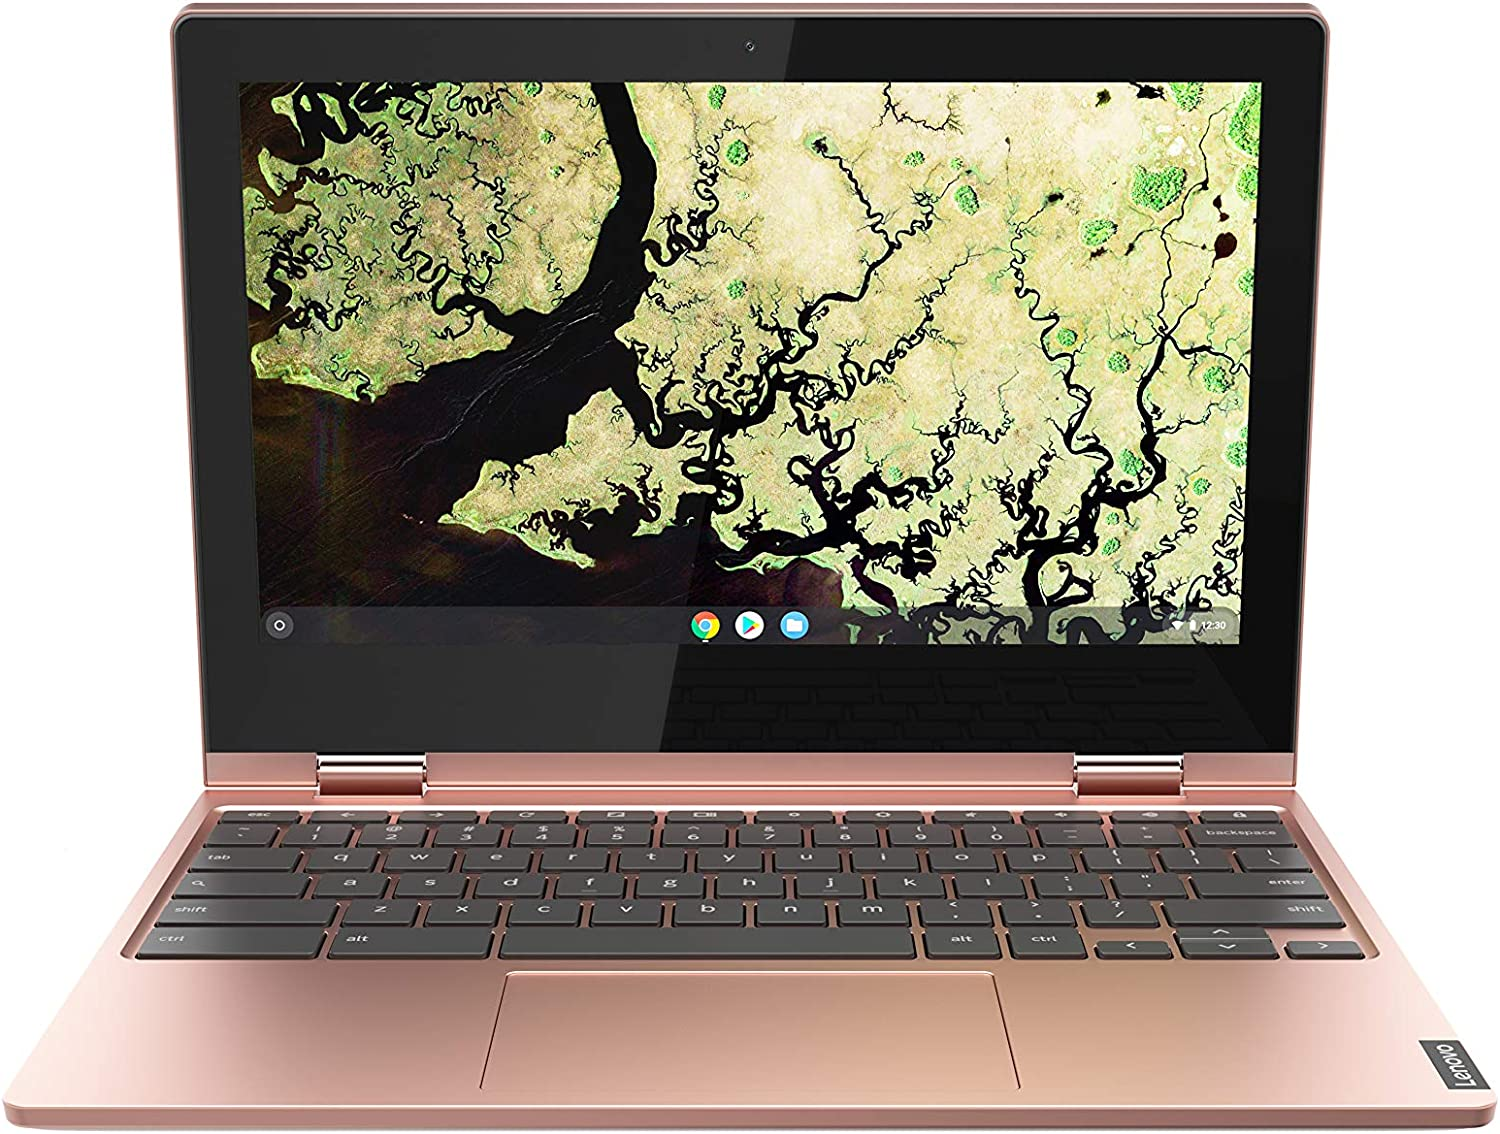 "Lenovo Chromebook C340 Laptop, 11.6"" HD (1366 X 768) Touchscreen Display, Intel Celeron N4000 Processor, 4GB LPDDR4 RAM, 64GB SSD, Intel UHD Graphics 600, Chrome OS, 81TA0007US, Sand Pink"